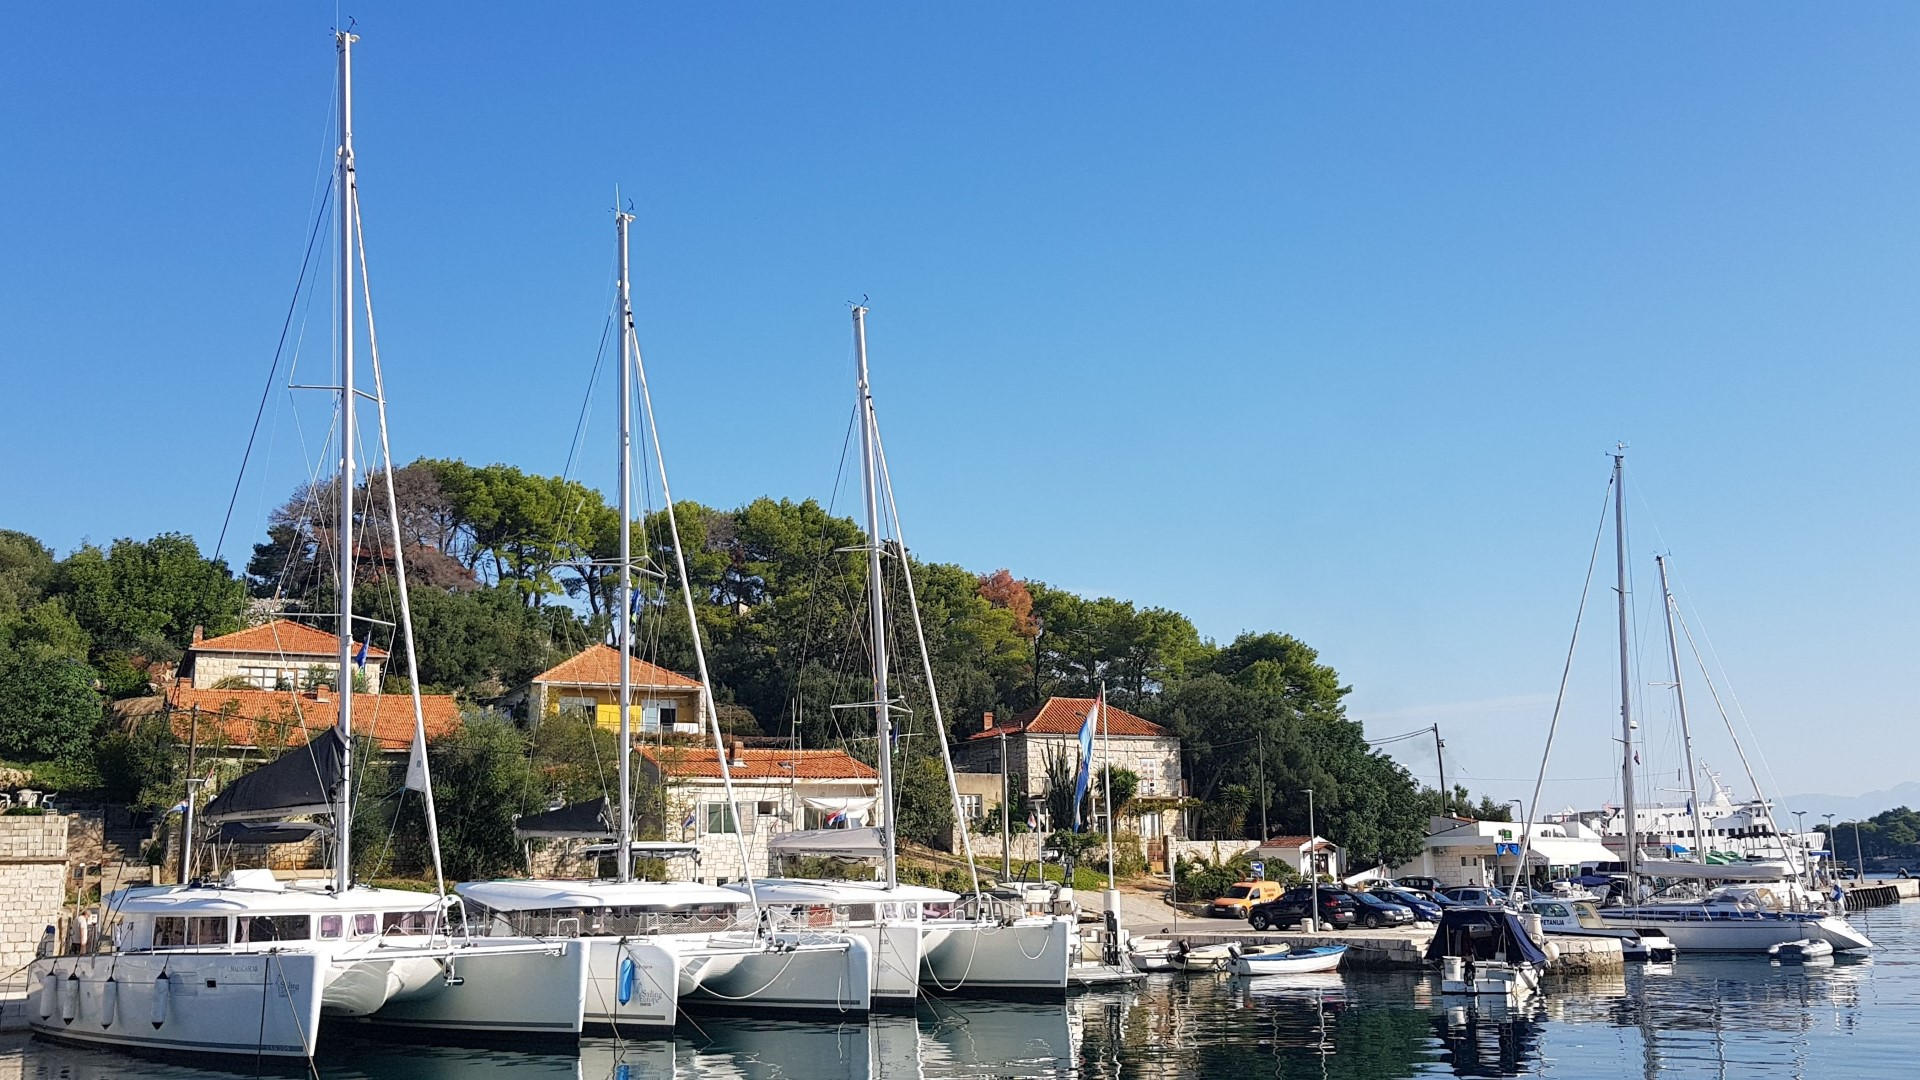 Sun Odyssey 449 (Port Royal) Marina Rogač - catamarans (photo taken 2019) - 5